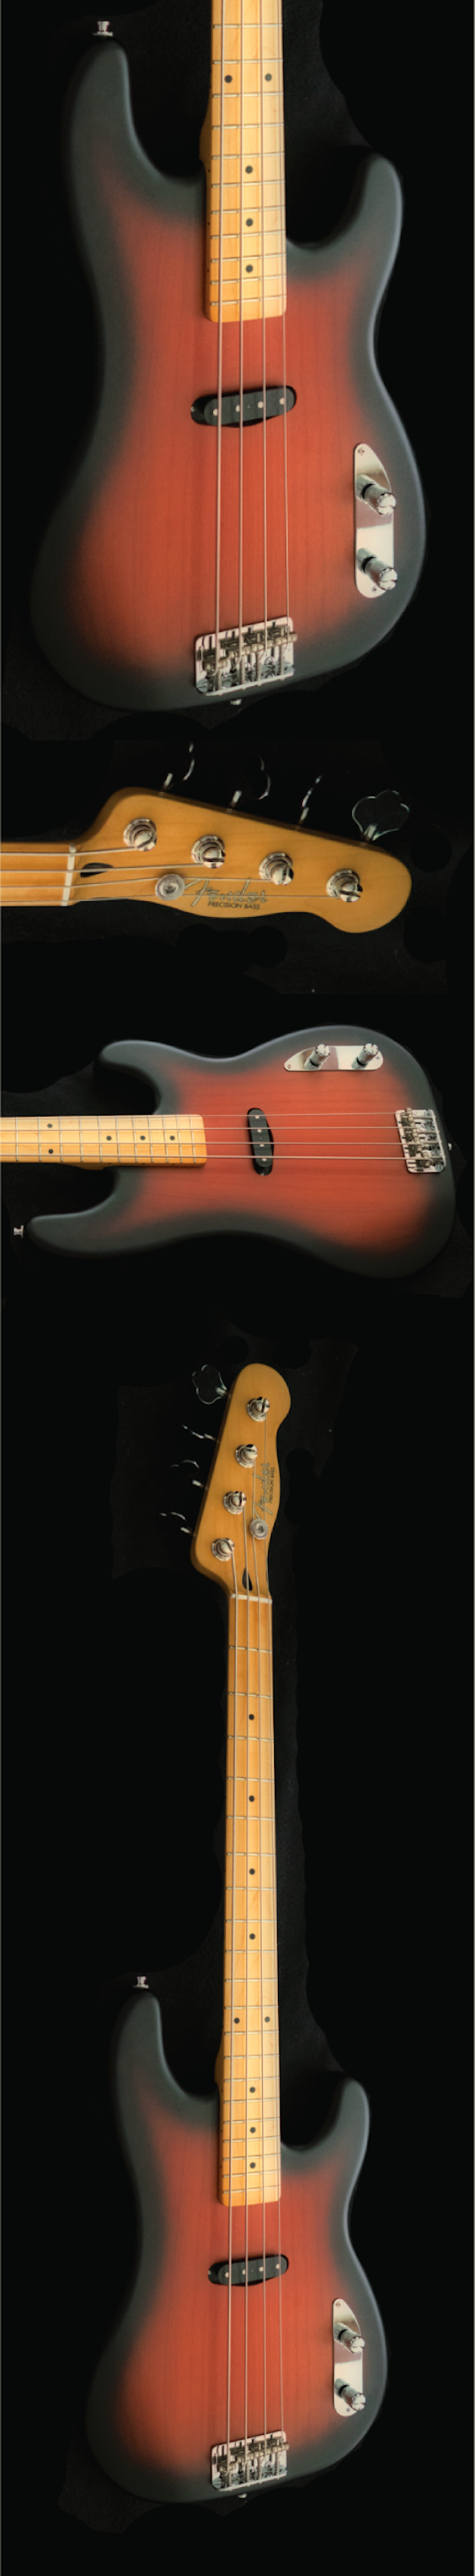 Fender 1954 precision i had fallen in love with the contoured body of the 1954 precision basses and using the one pictured above as my guide i built my own maxwellsz